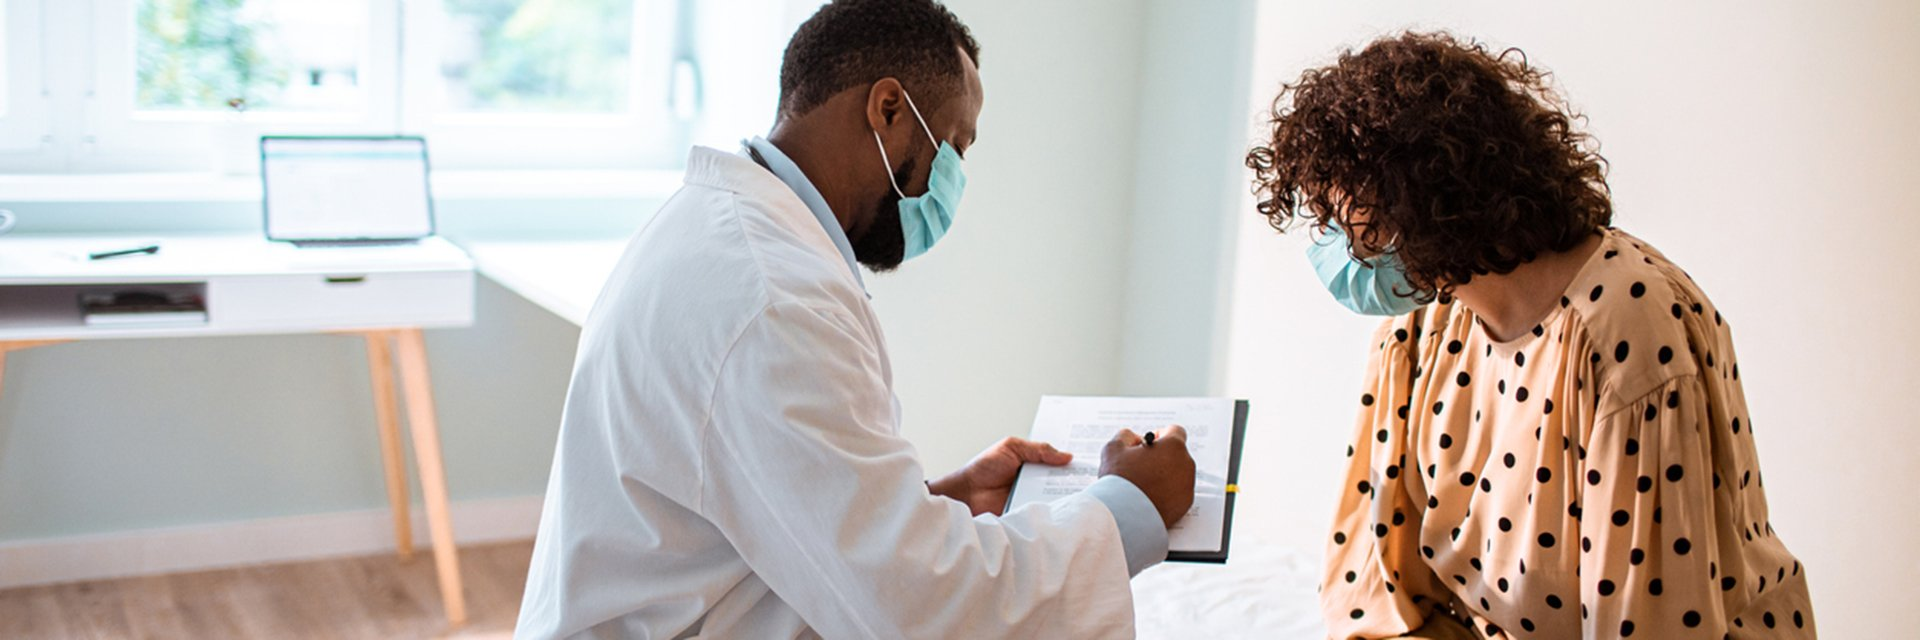 doctor reviewing chart with patient in office